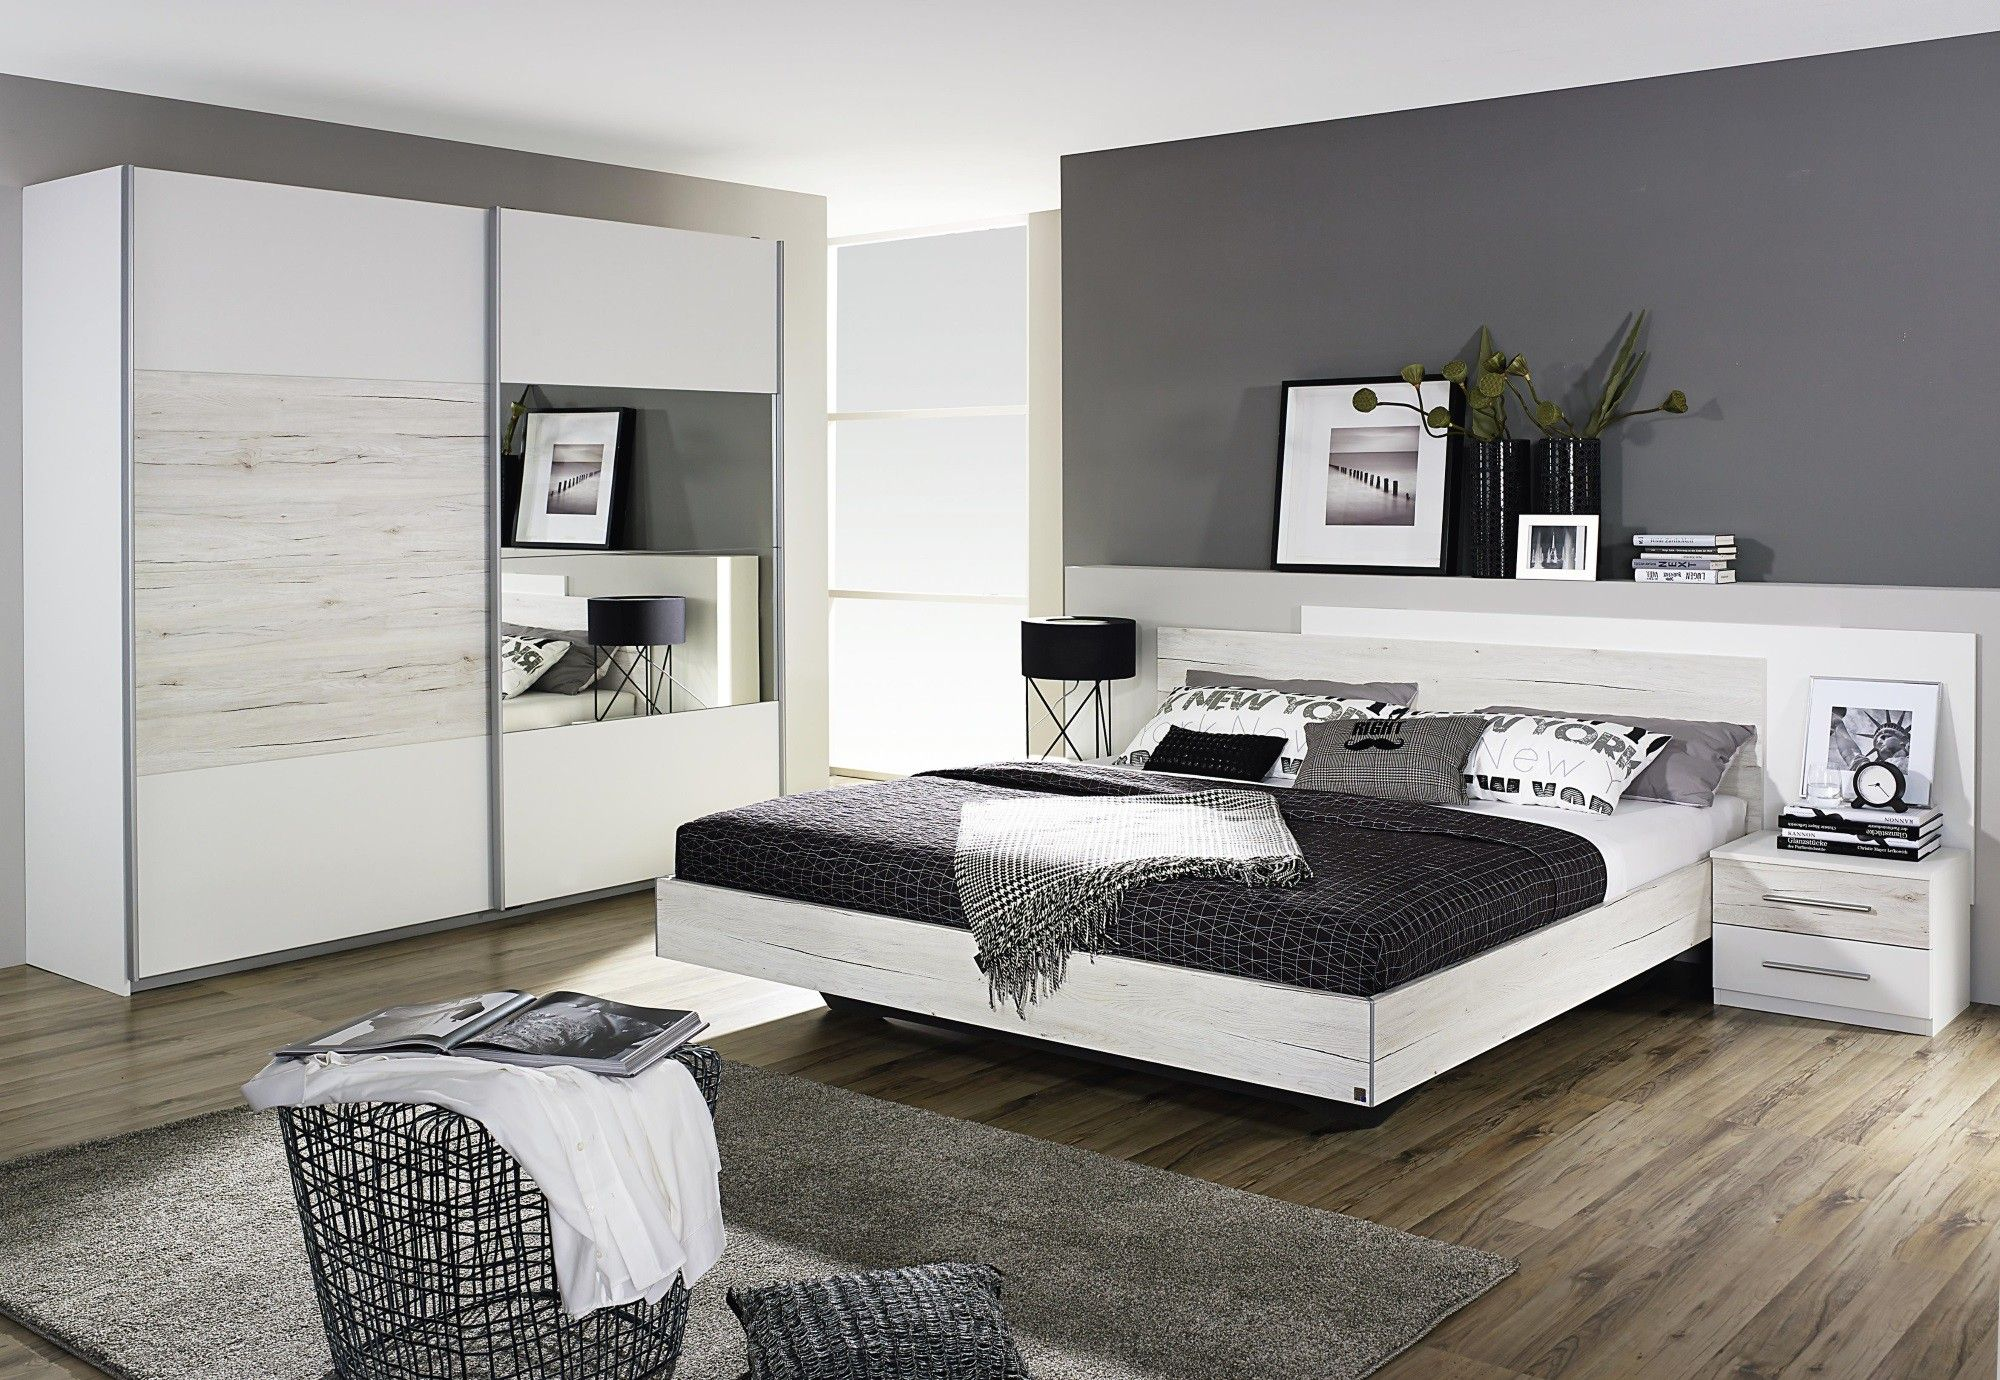 Deco chambre adulte contemporaine - Deco chambre adulte contemporaine ...